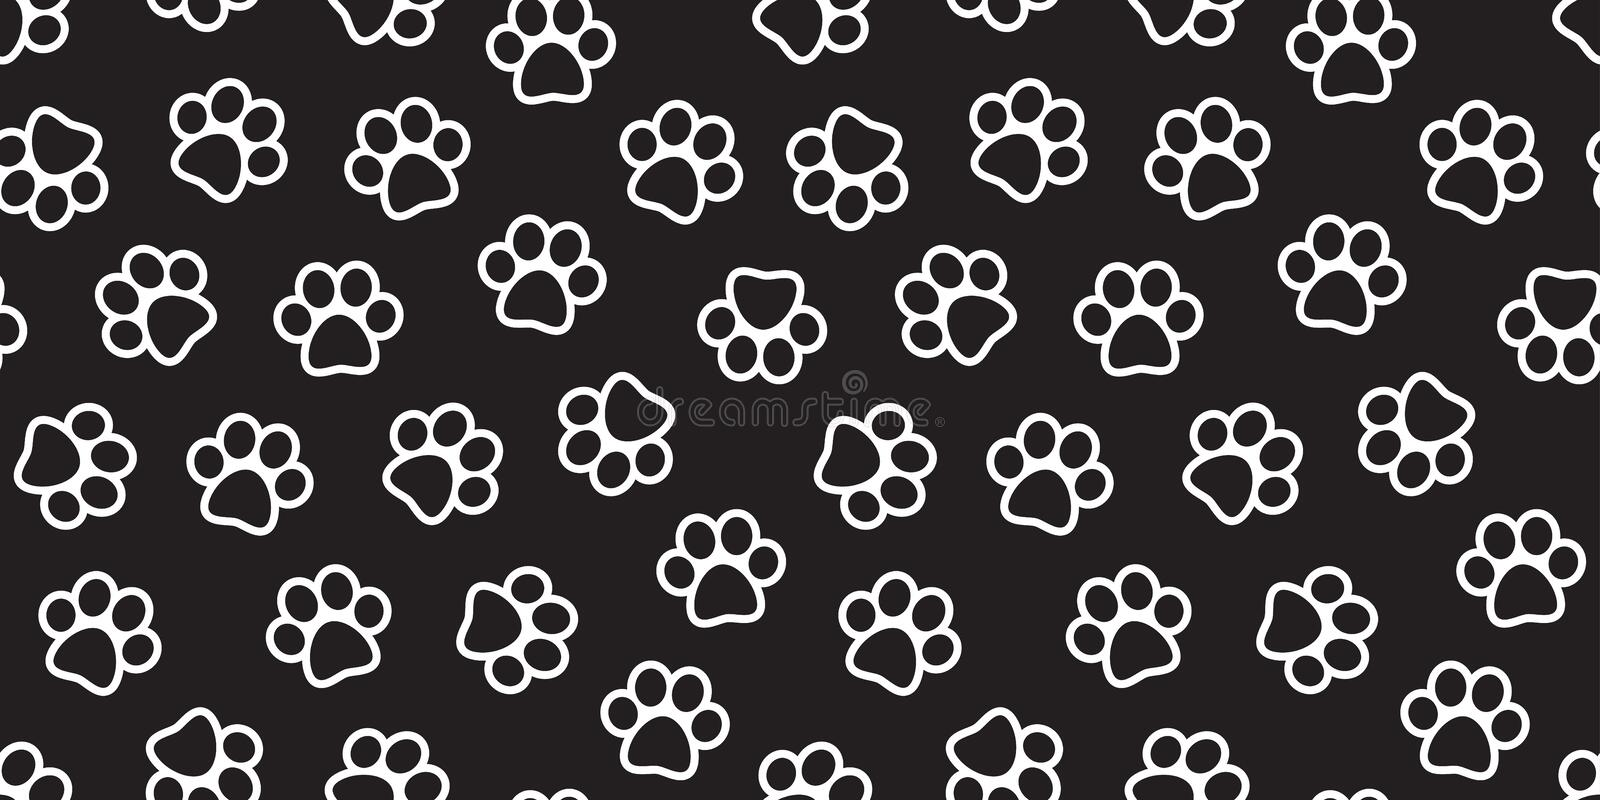 Dog Paw Seamless Pattern Vector Cat Paw Footprint Isolated Wallpaper Background Black Stock Vector Illustration Of Cartoon Mark 125422443